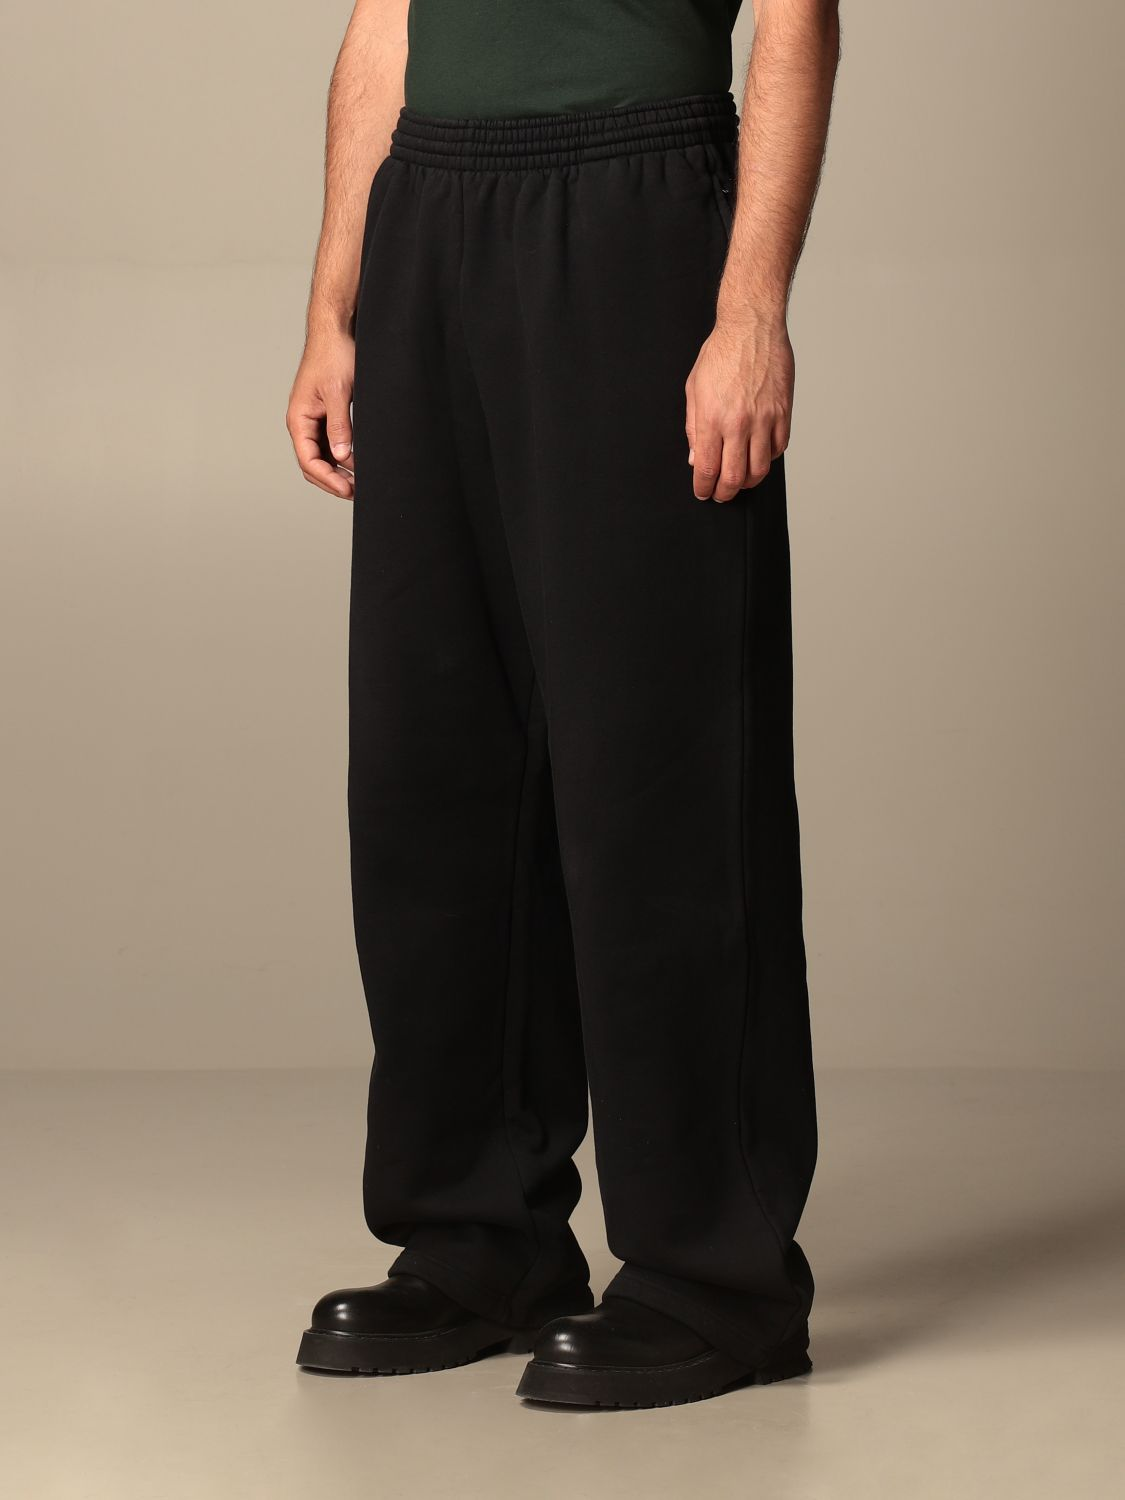 Trousers Balenciaga: Balenciaga cotton jogging pants black 4